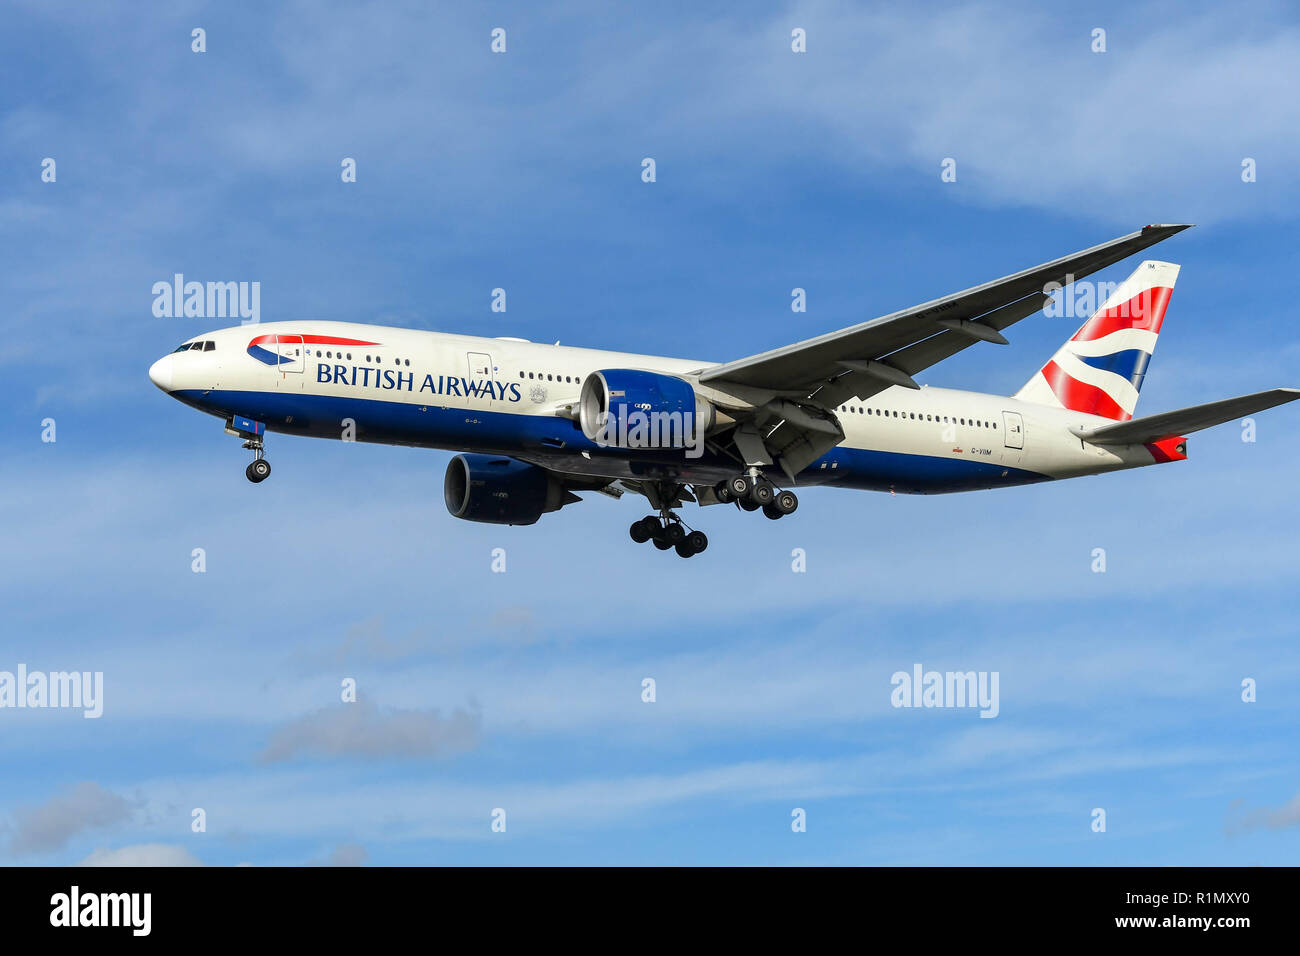 LONDON, ENGLAND - NOVEMBER 2018: British Airways Boeing 777 long haul airliner on final approach to land at London Heathrow Airport. - Stock Image